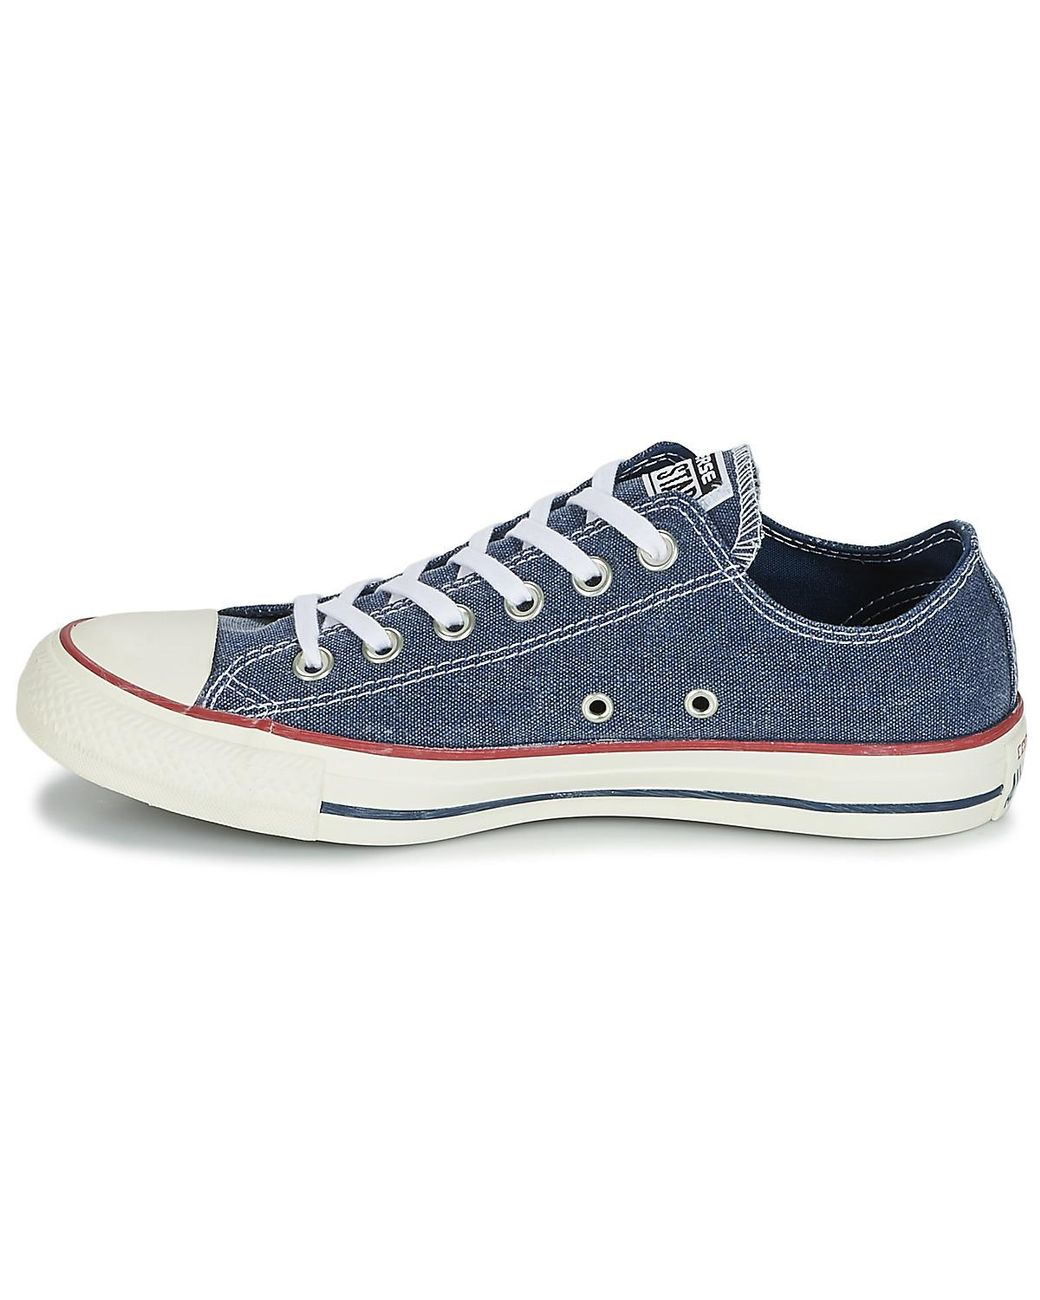 98f1237563d6 Converse Chuck Taylor All Star Ox Stone Wash Men s Shoes (trainers) In Blue  in Blue for Men - Lyst